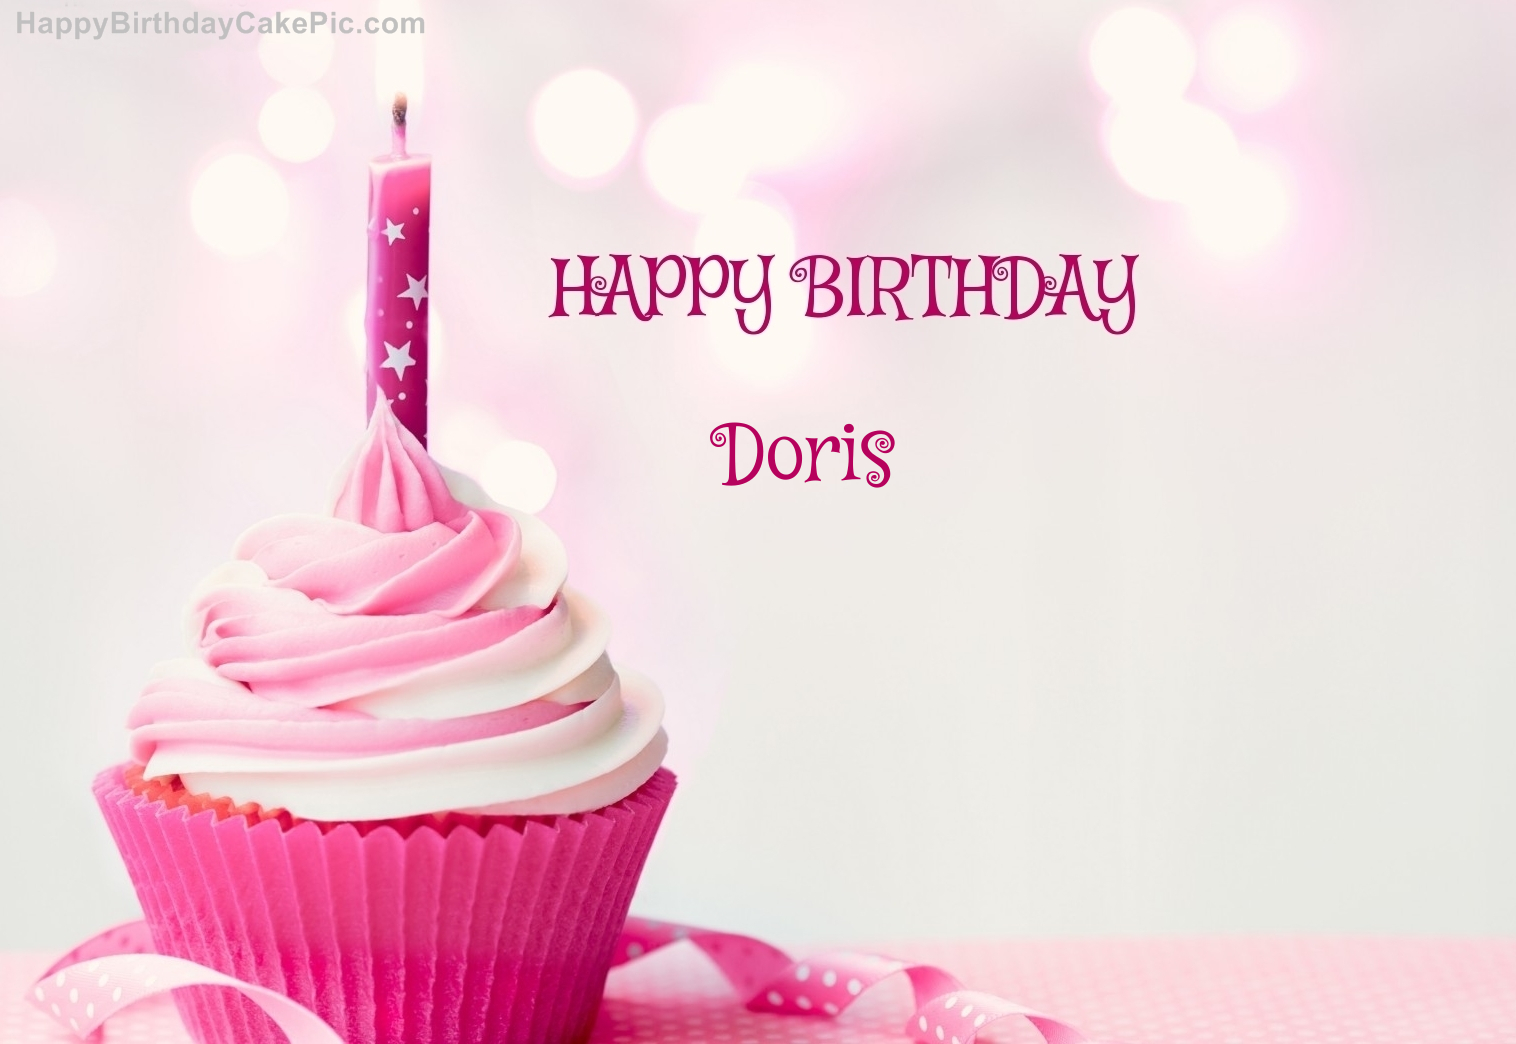 Happy Birthday Cupcake Candle Pink Cake For Doris